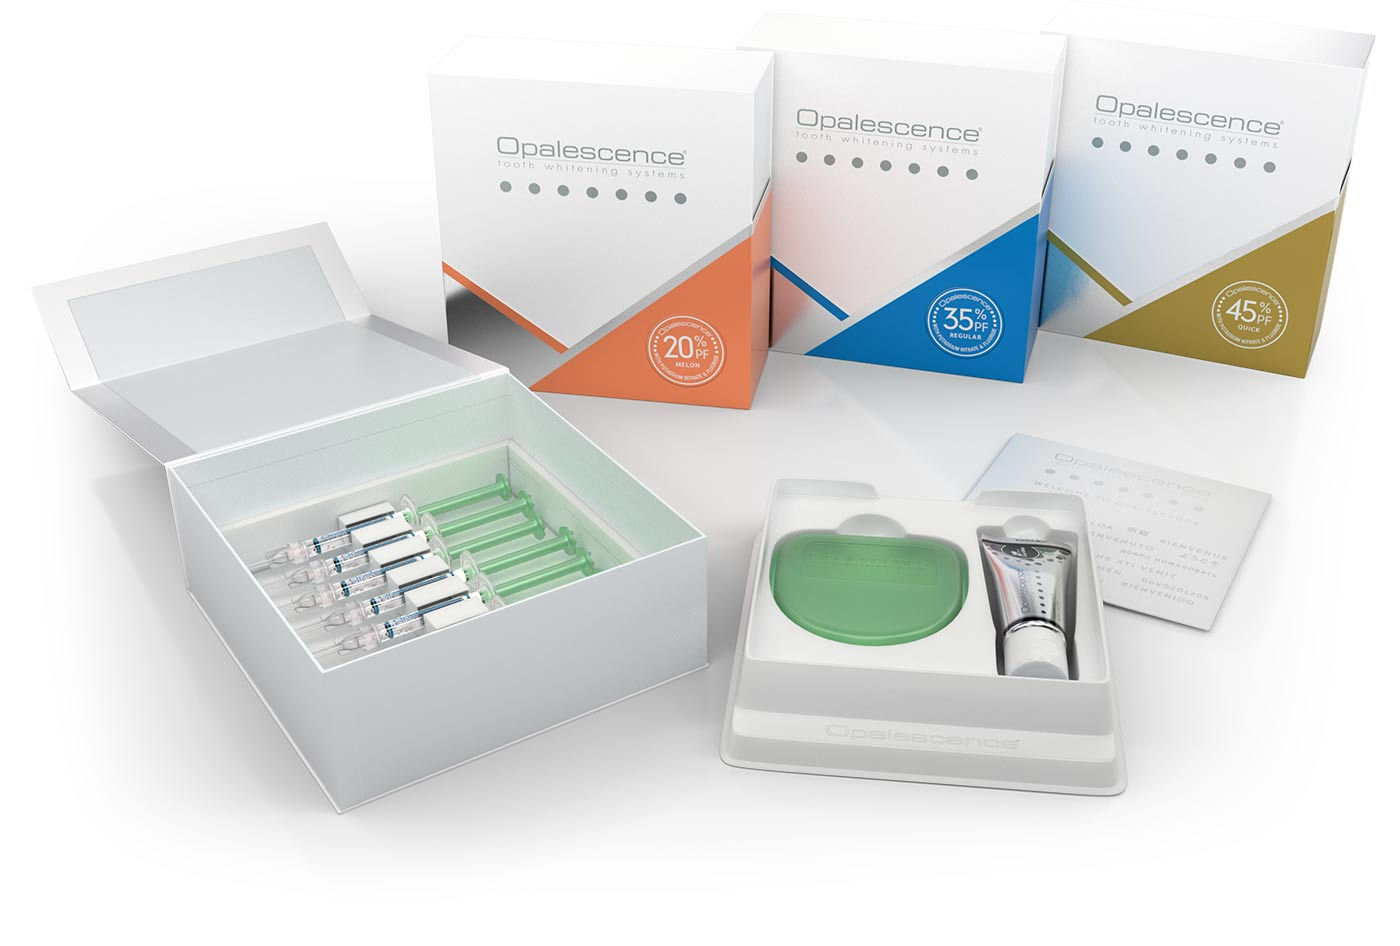 Opalescence Tooth Whitening System